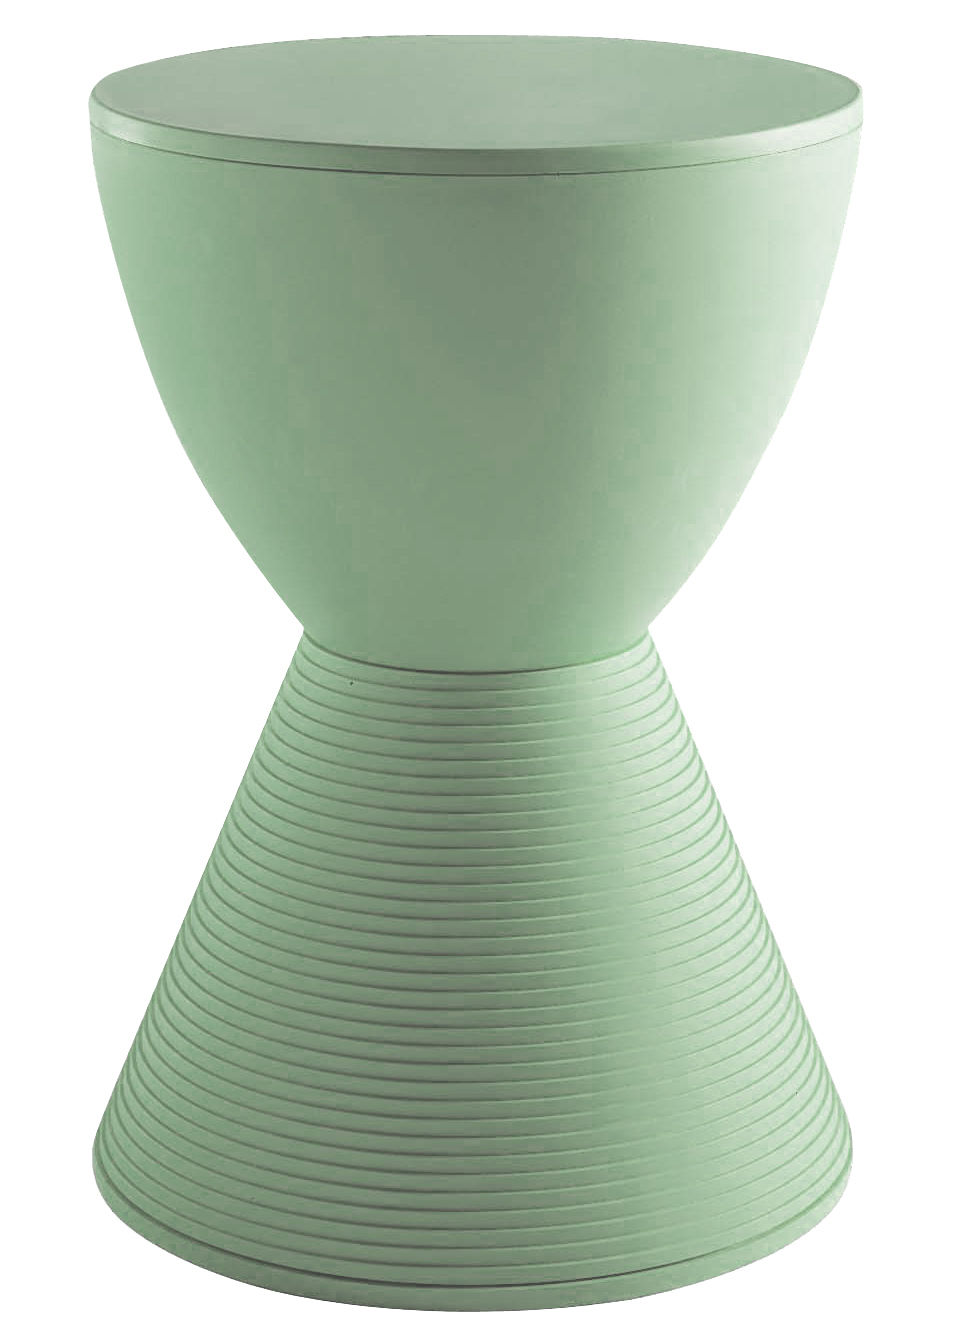 Prince Aha Stool Fennel Green By Kartell